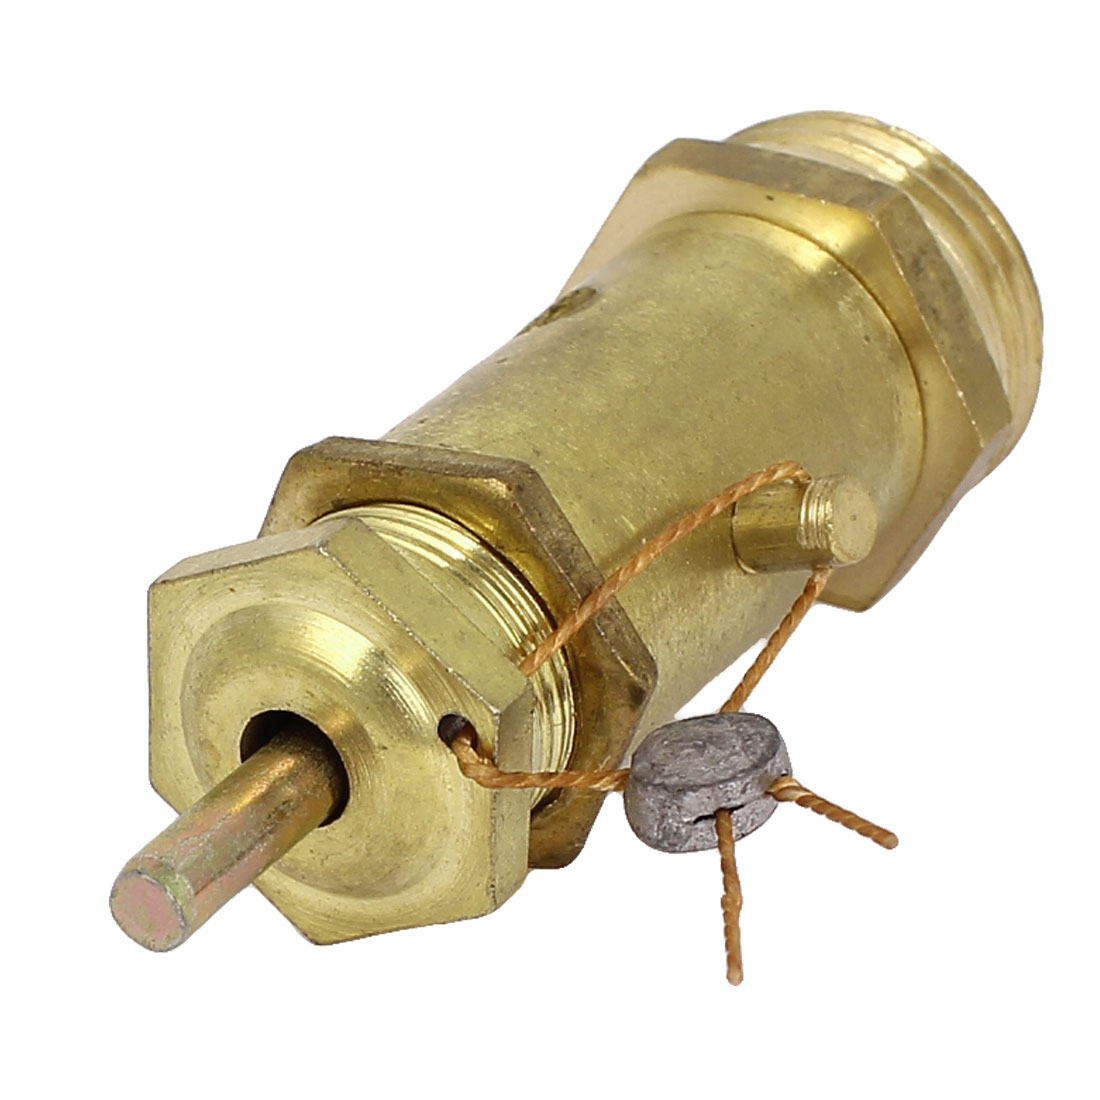 Air Compressor Safety Relief Pressure Valve Brass Tone 1/2BSP 21mm Male Thread